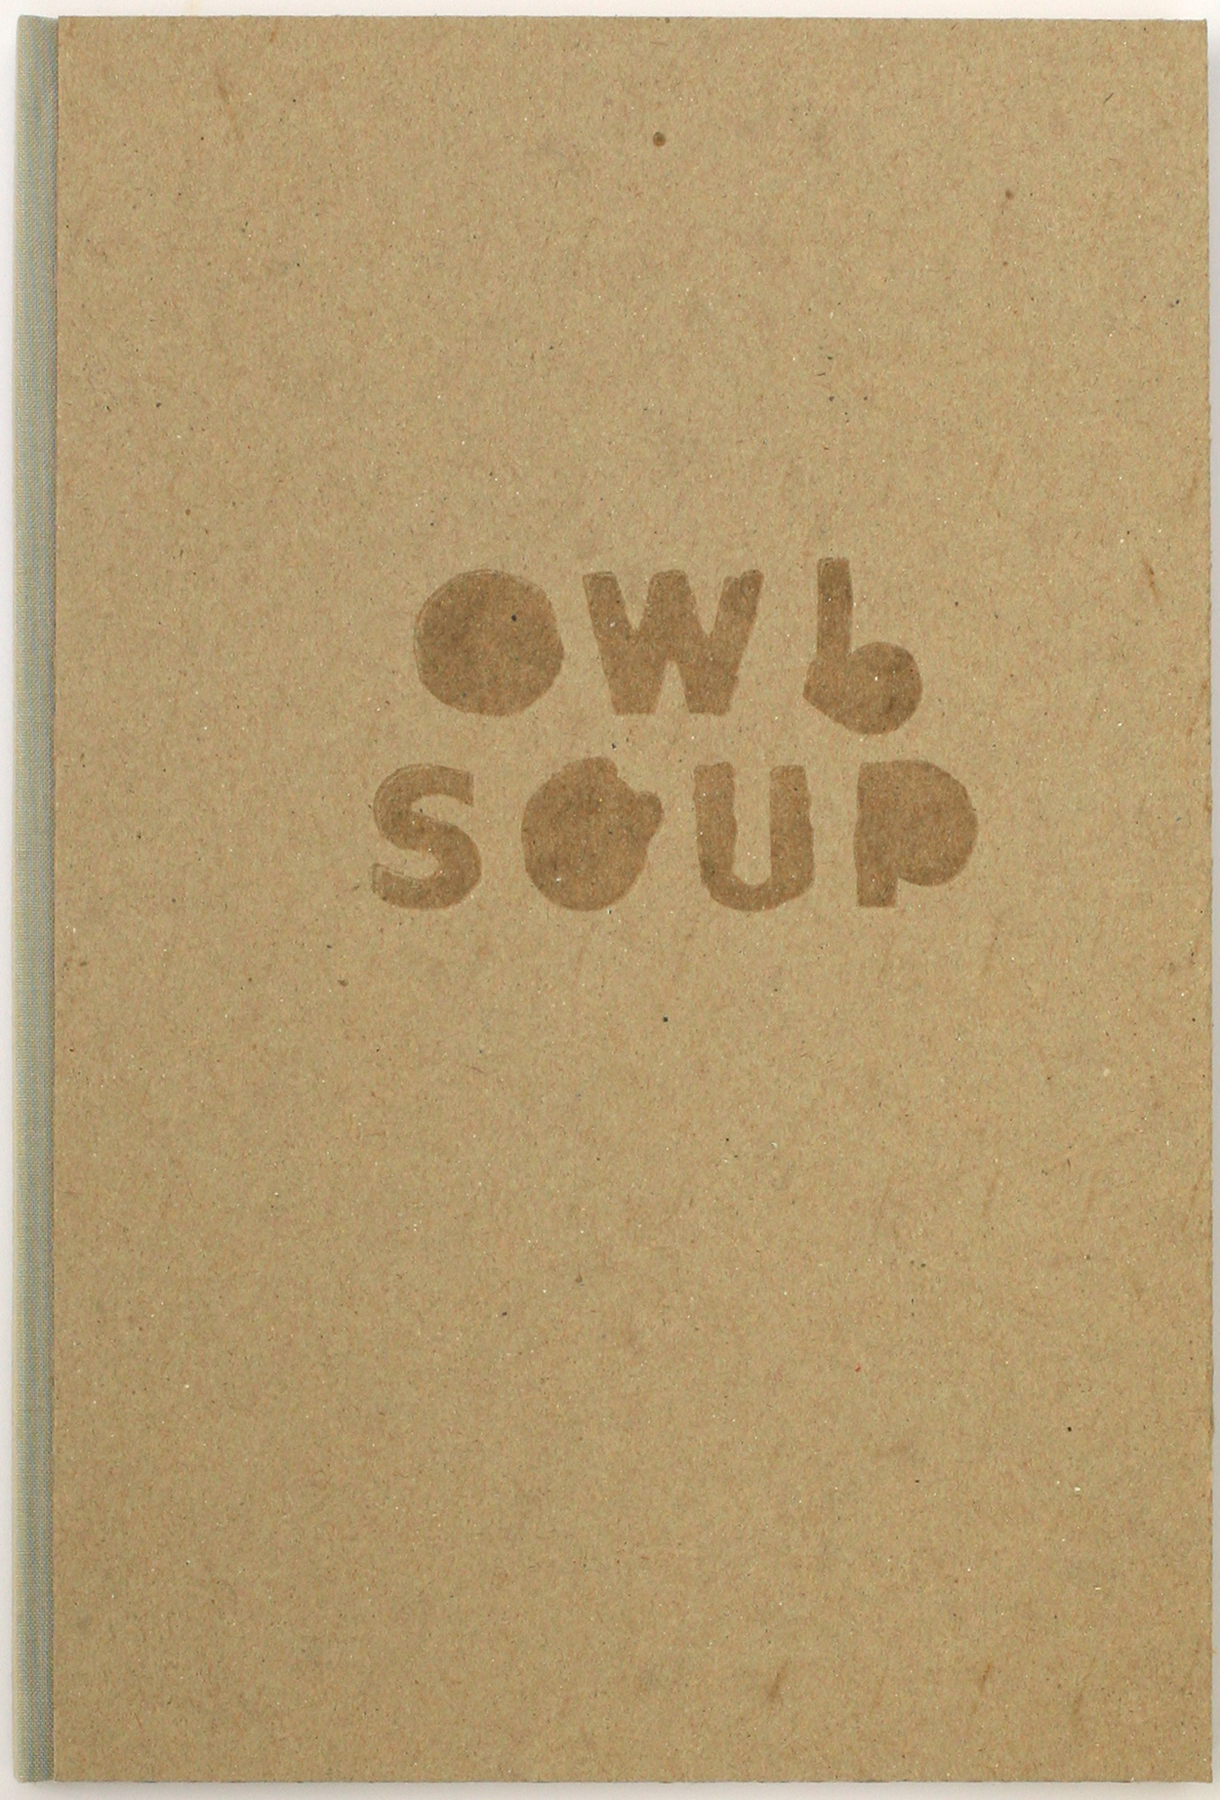 Owl Soup, edition of ten, 2014 (in 9 private collections, including the Achenbach Foundation)